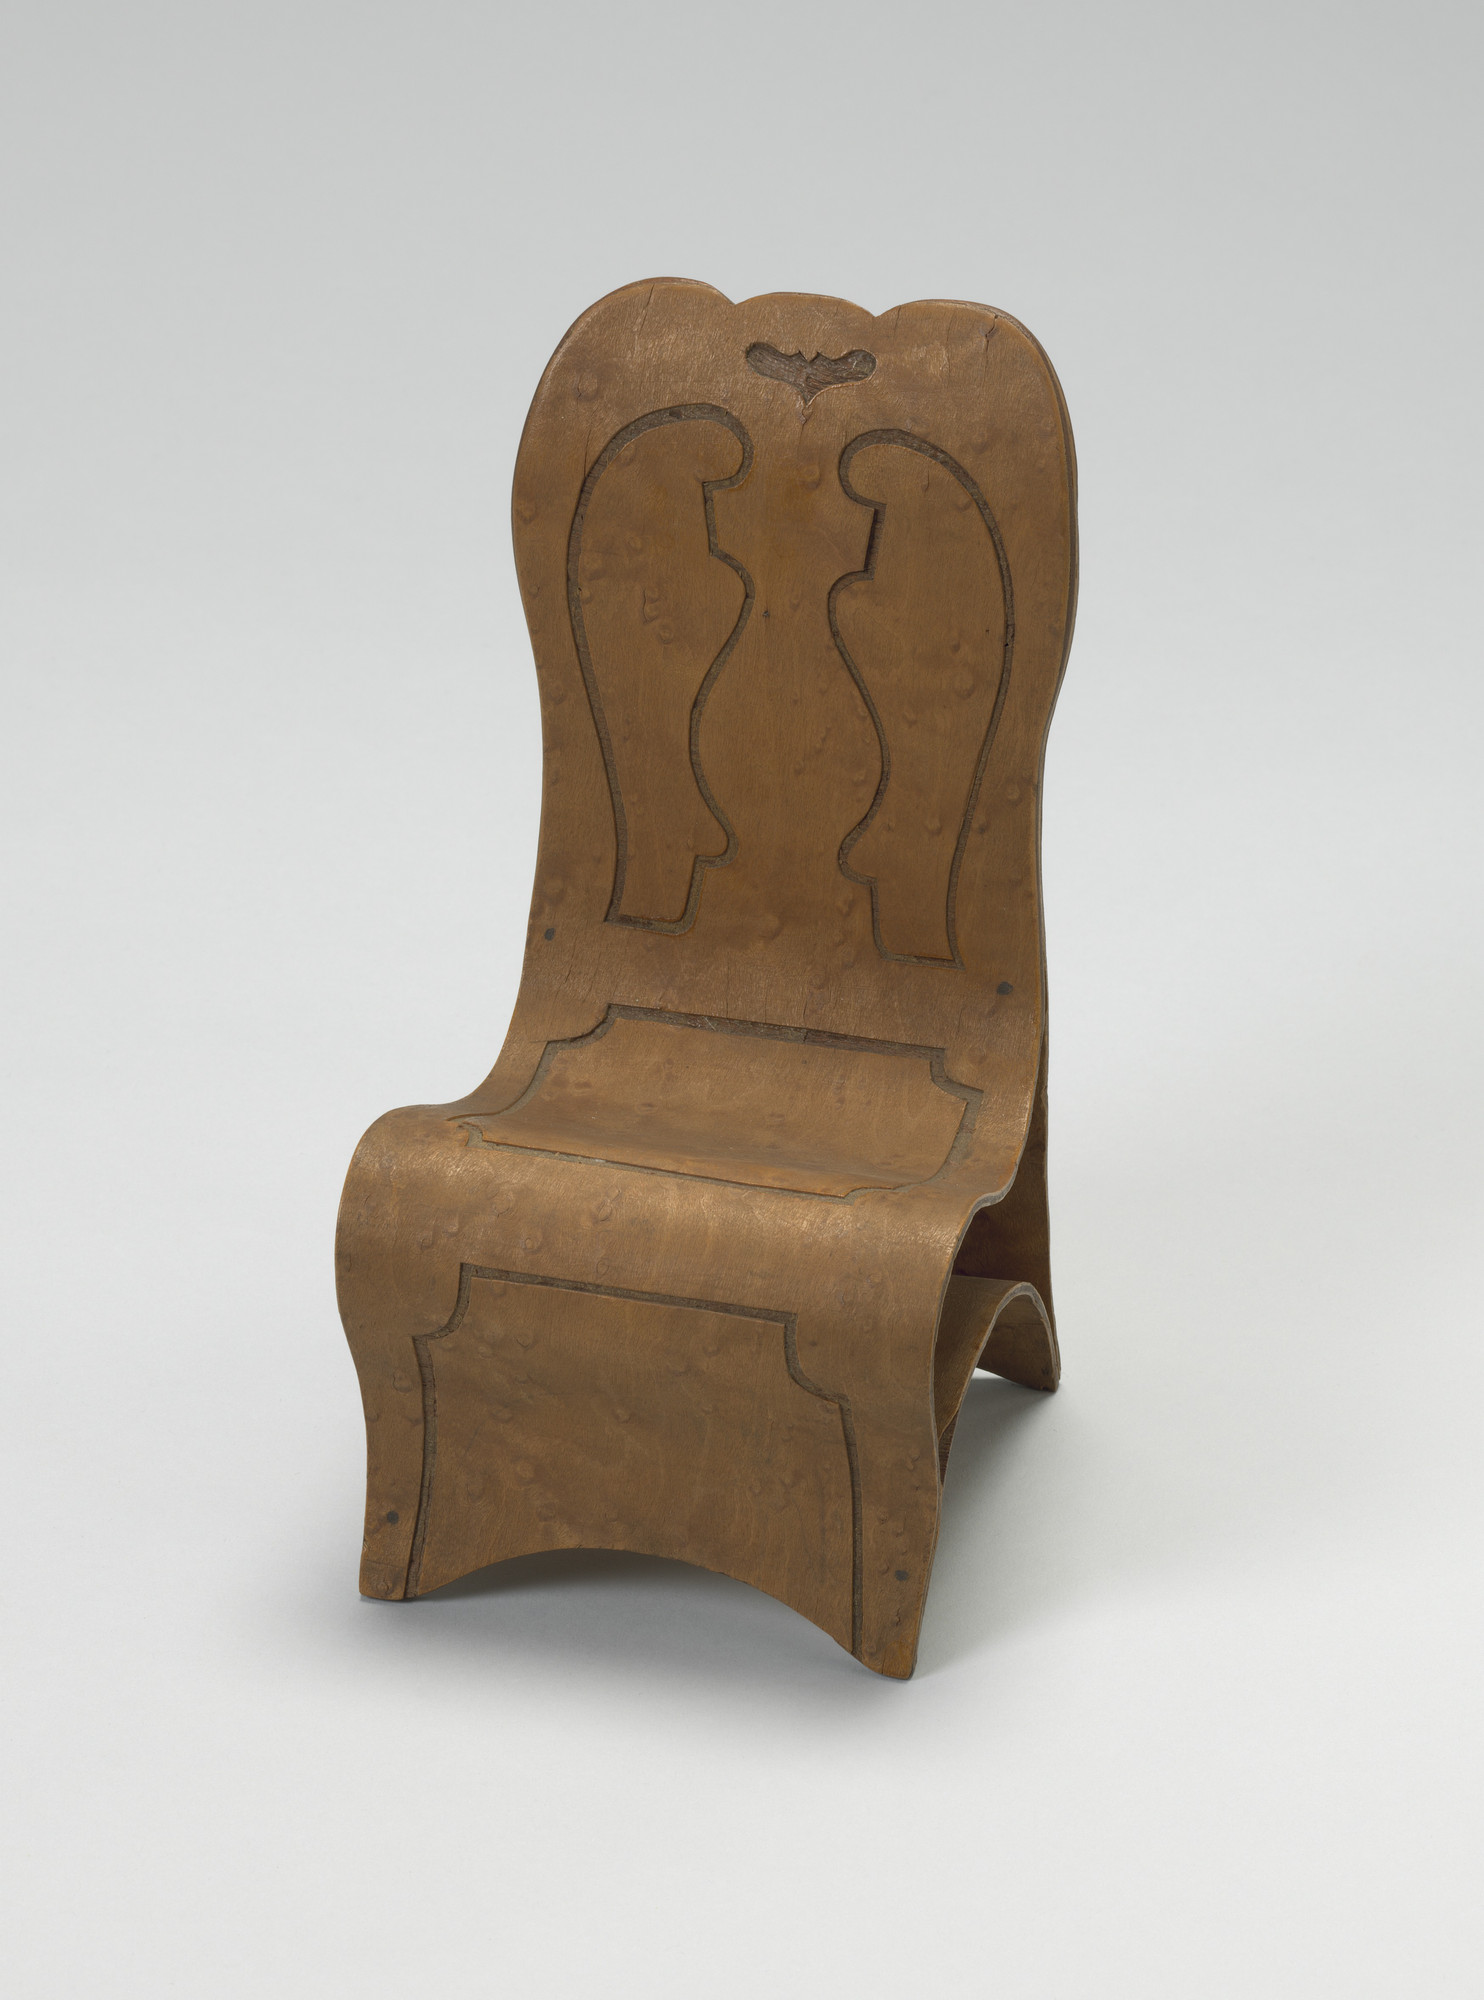 Isaac I. Cole. Patent Model for One-piece Plywood Chair. 1873